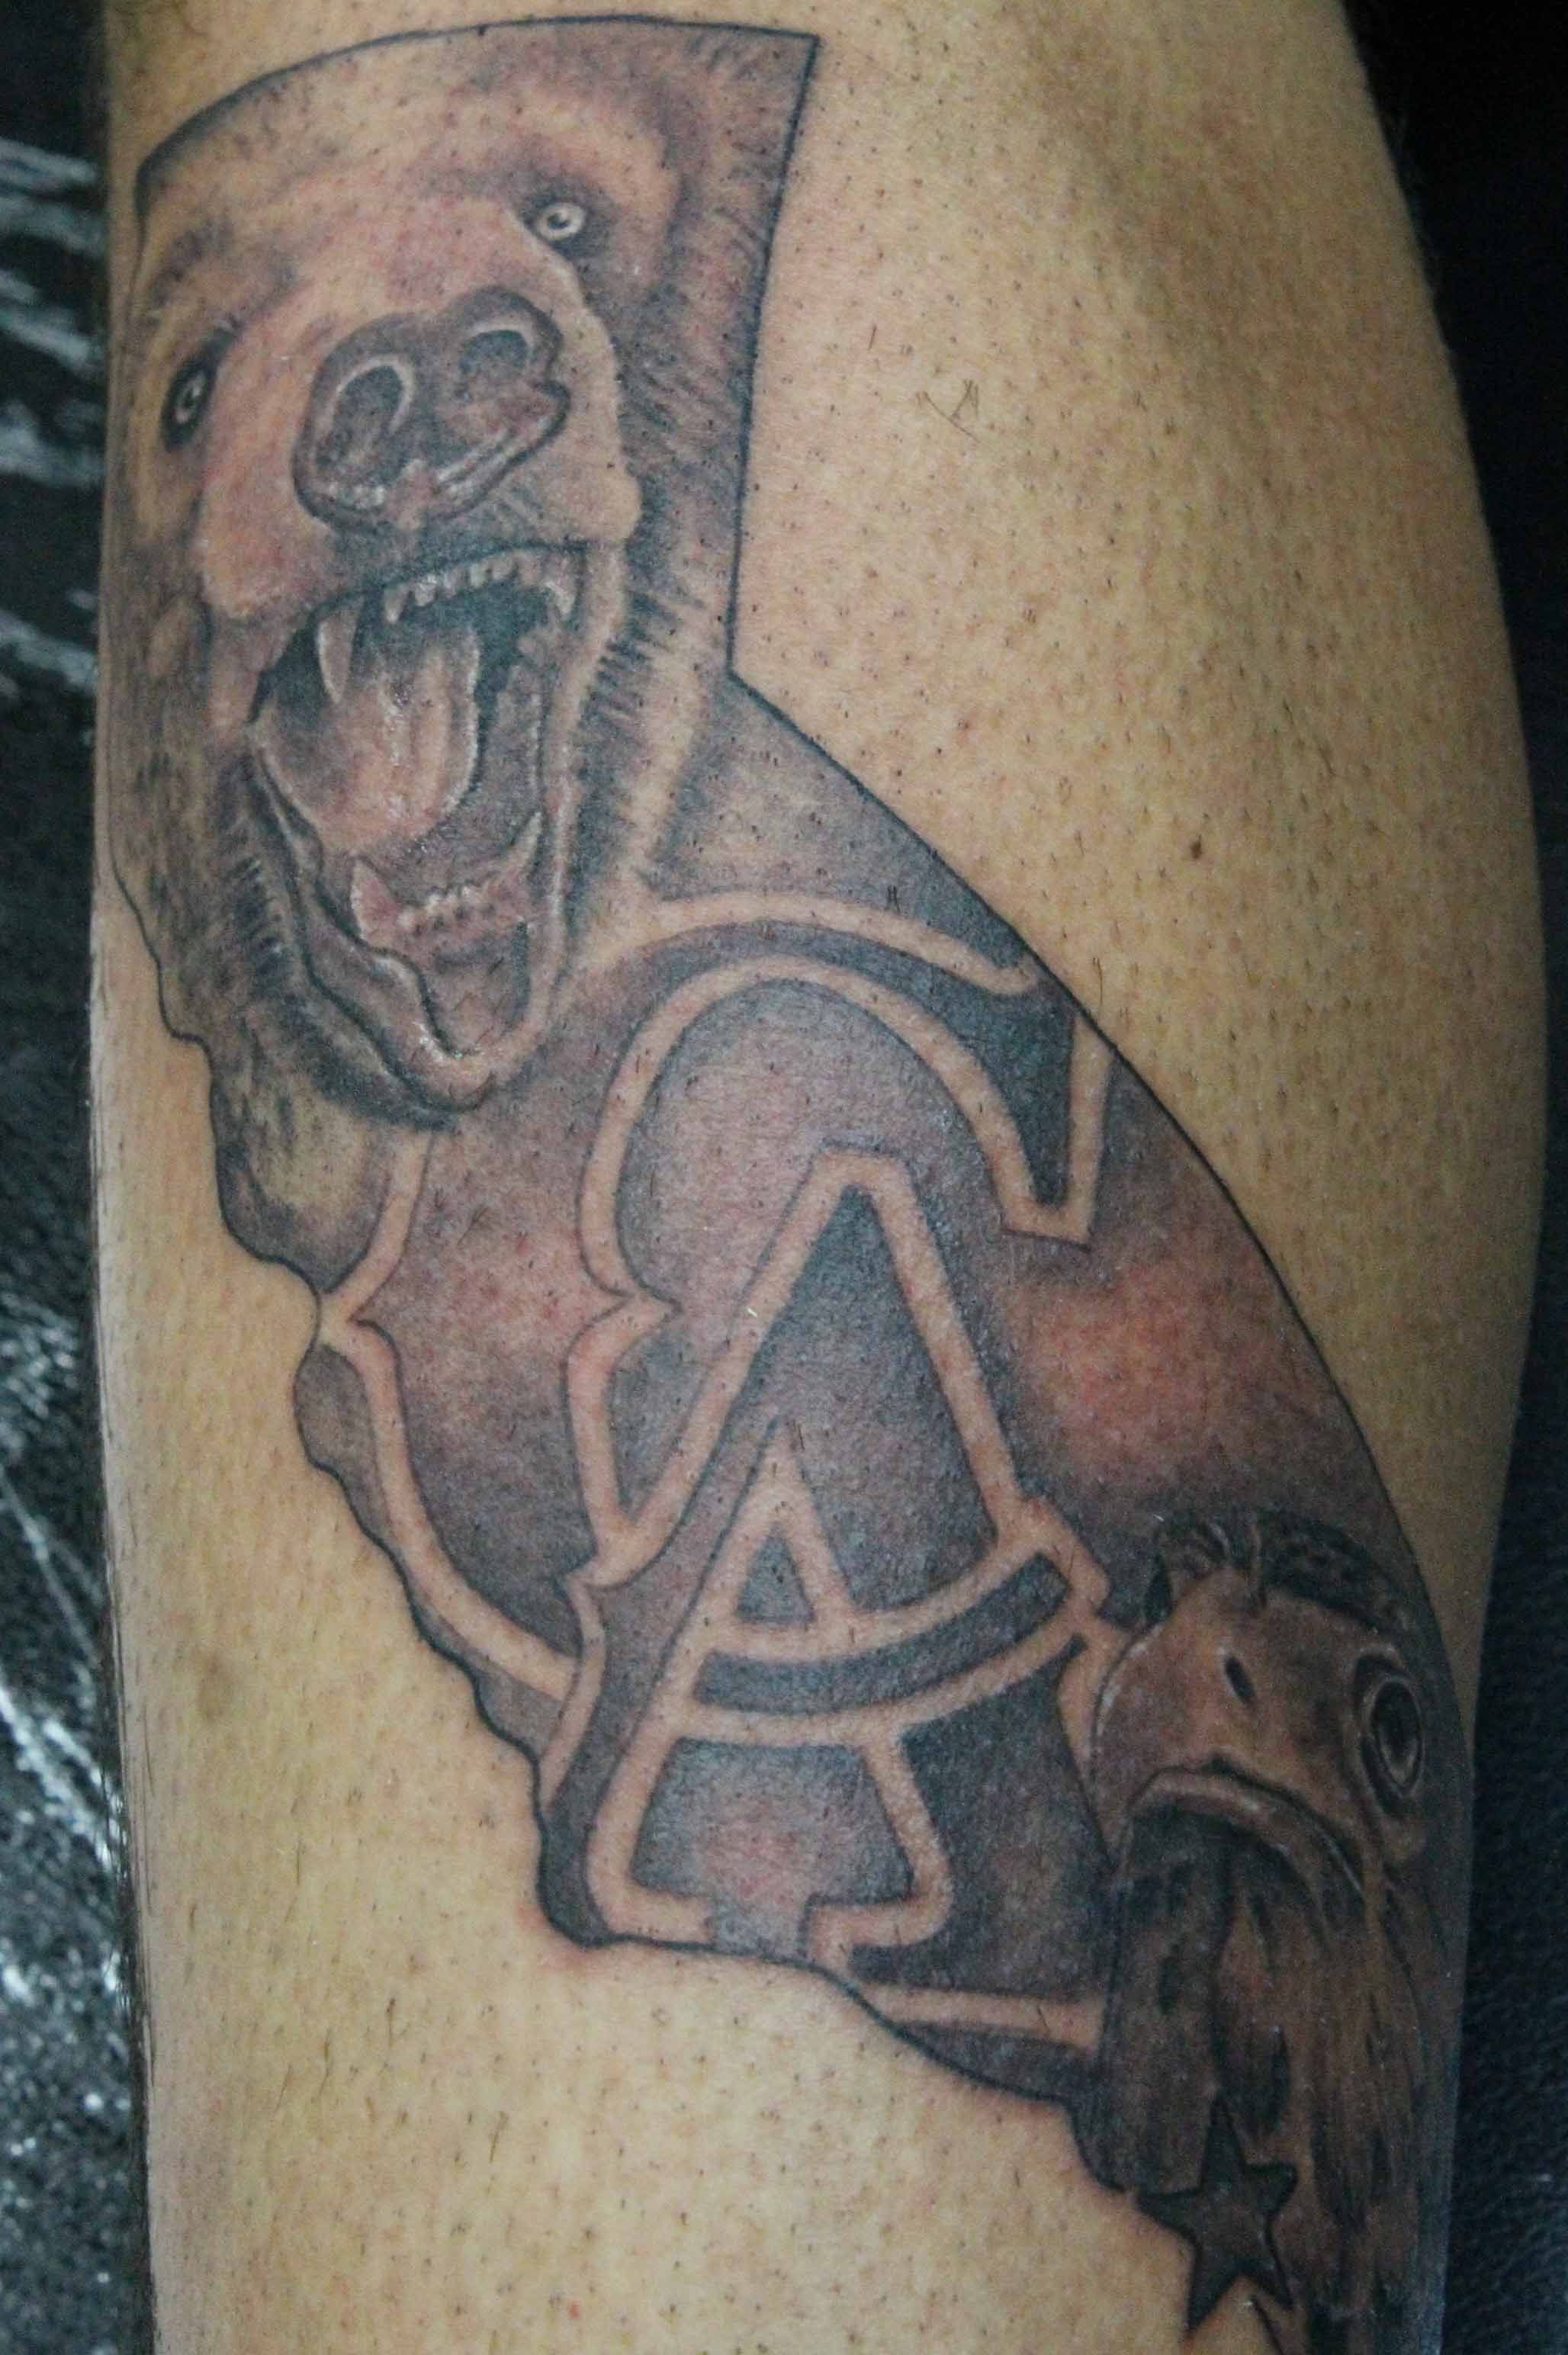 Tattoo tattoo designs and photography you can - Pics Photos Tattoo Designs Of California California Tattoo Designs